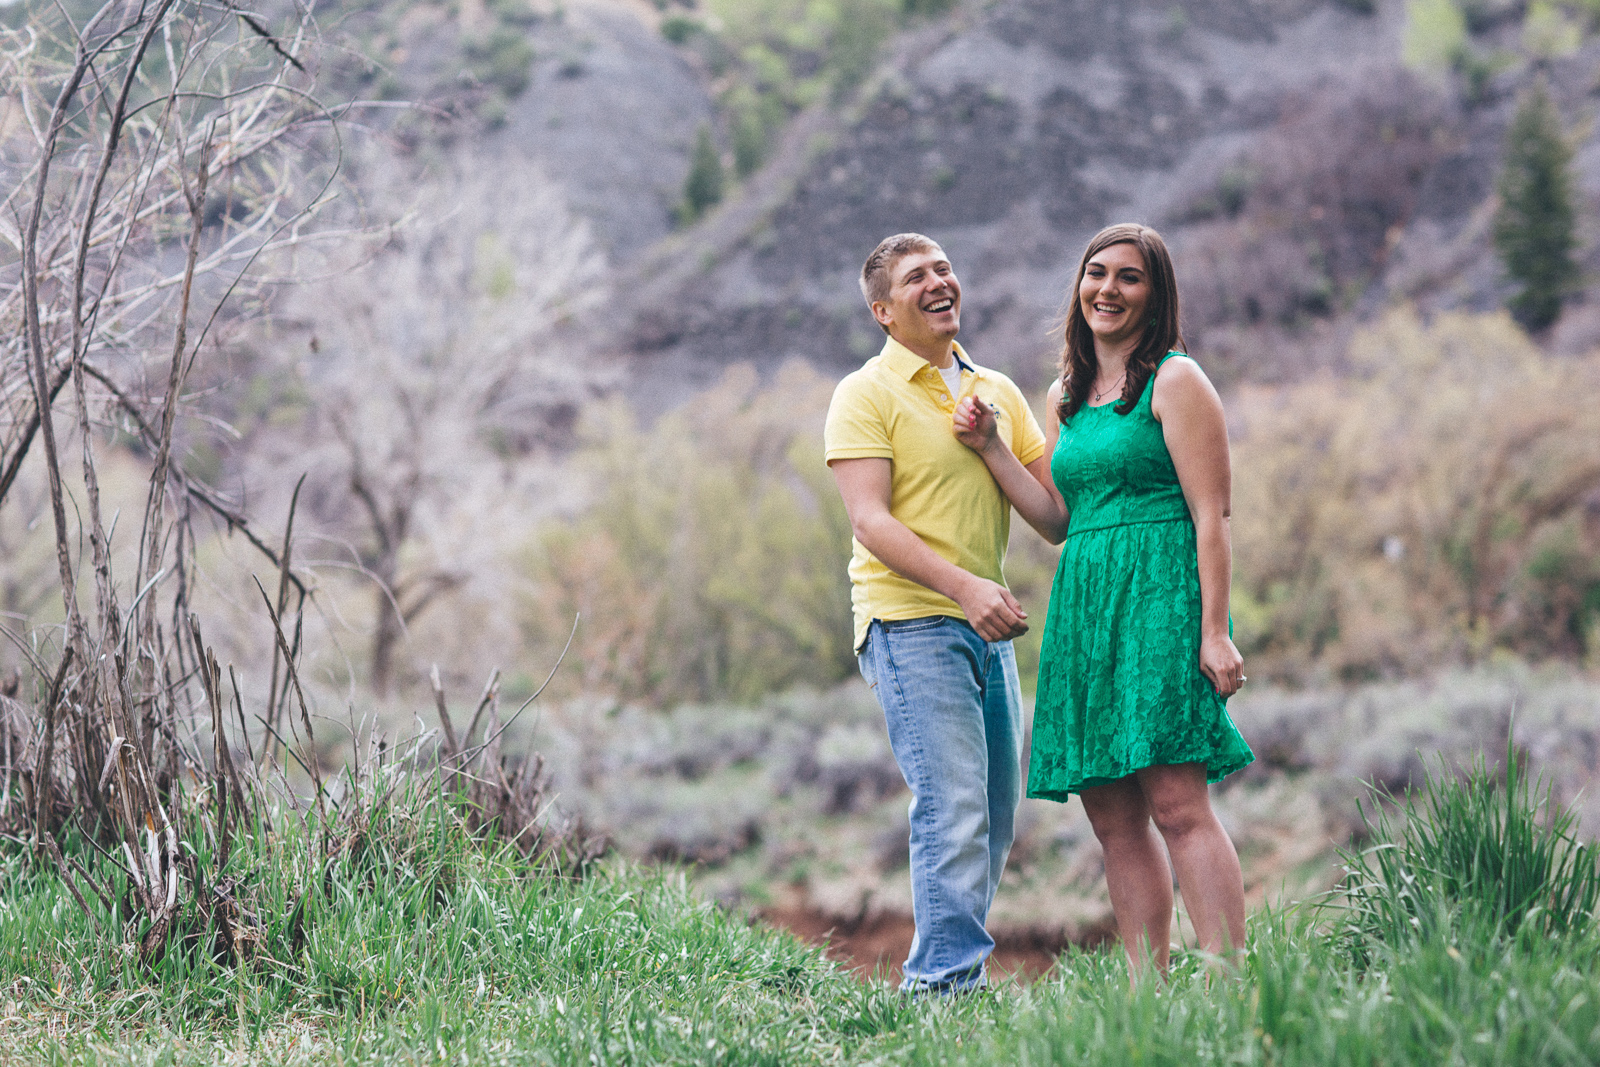 044-engagement-trees-fun-wedding-train-laughing-durango-colorado-farmington-candid